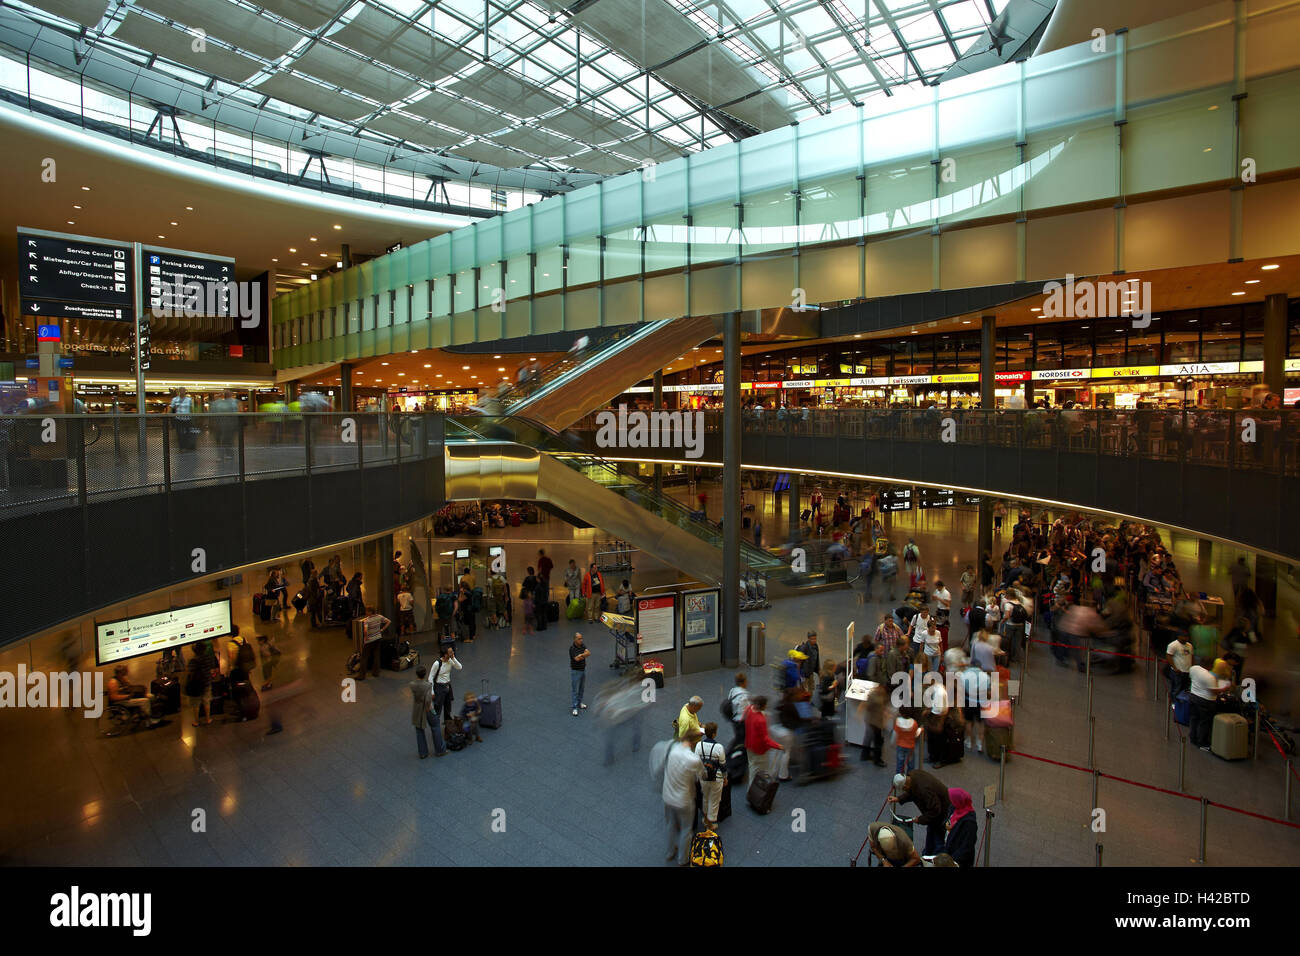 Switzerland, Zurich, airport, hall, tourist, airport hall, building, glass roof, information switch, ticket switch, - Stock Image